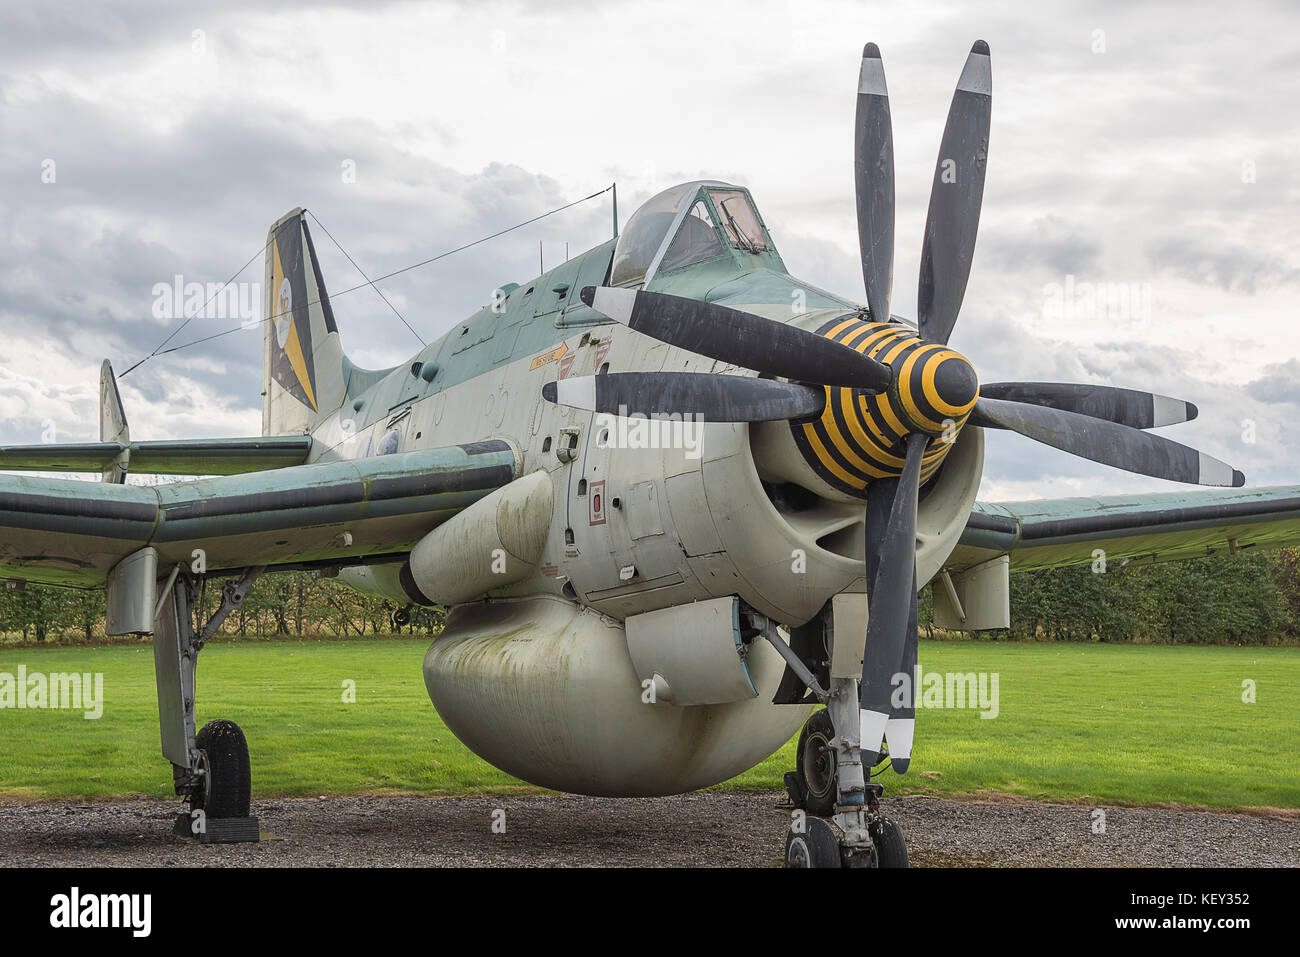 Close up photograph of a Fairey Gannet aircraft showing contact rotating propellers - Stock Image